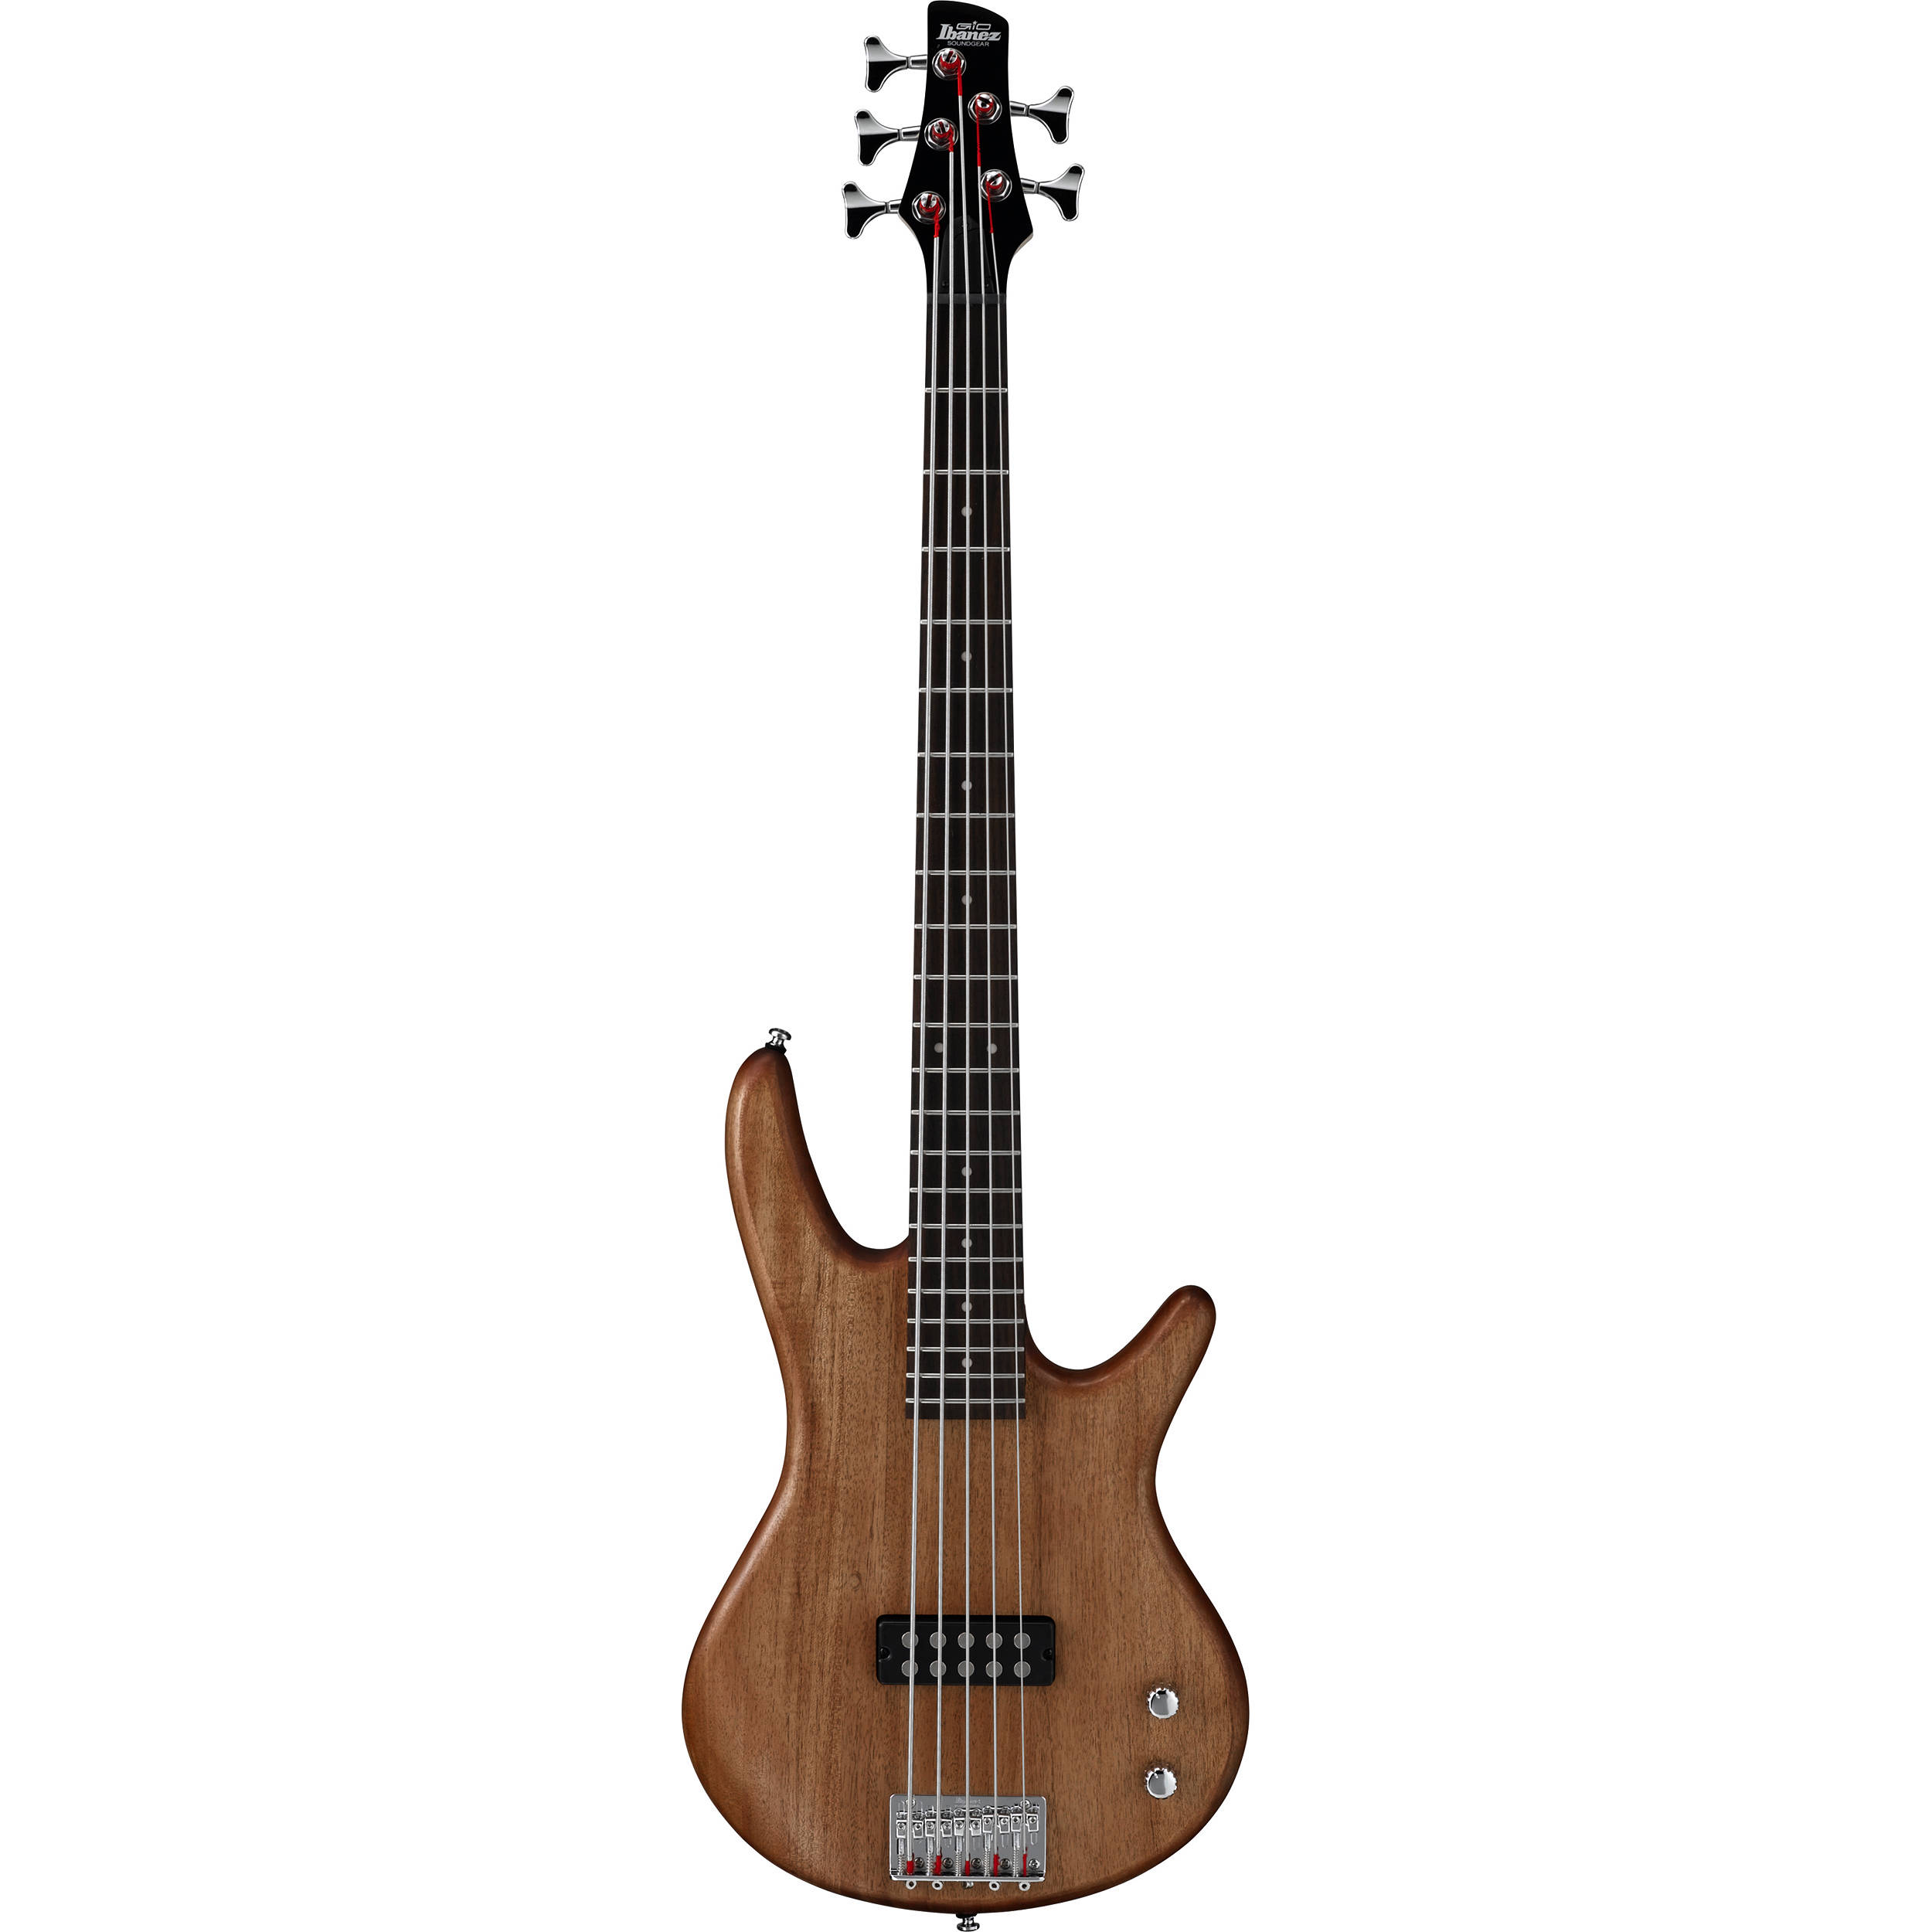 ibanez gsr105exmol 5 string electric bass guitar gsr105exmol. Black Bedroom Furniture Sets. Home Design Ideas